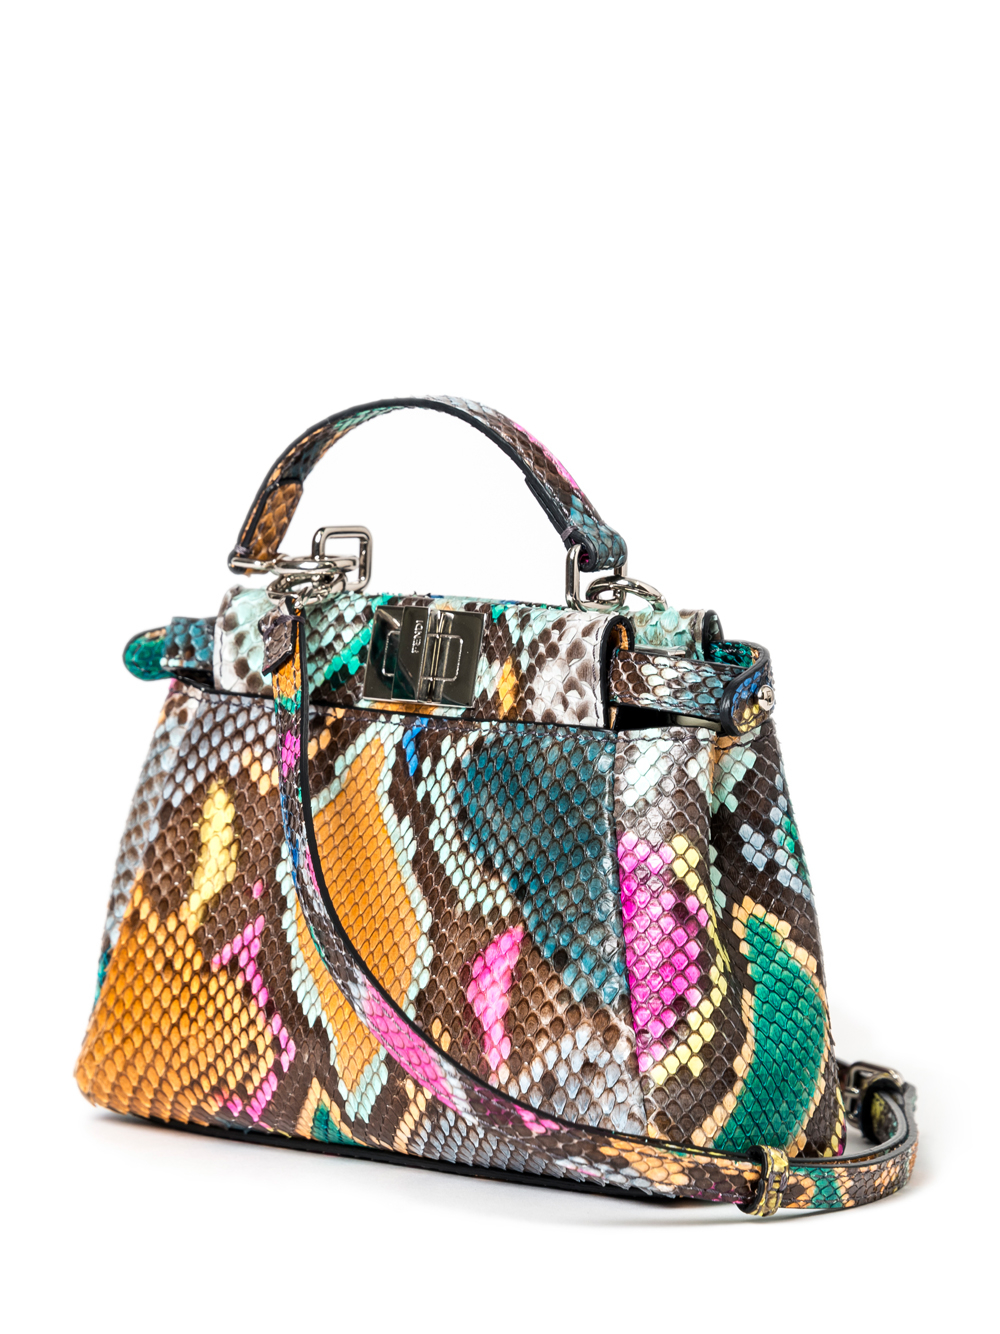 shopping fendi peekaboo mini python shoulder bag pink 5950 26135 ab730   closeout lyst fendi python peekaboo charm bag eb0f9 739de 90c32db3dfdba